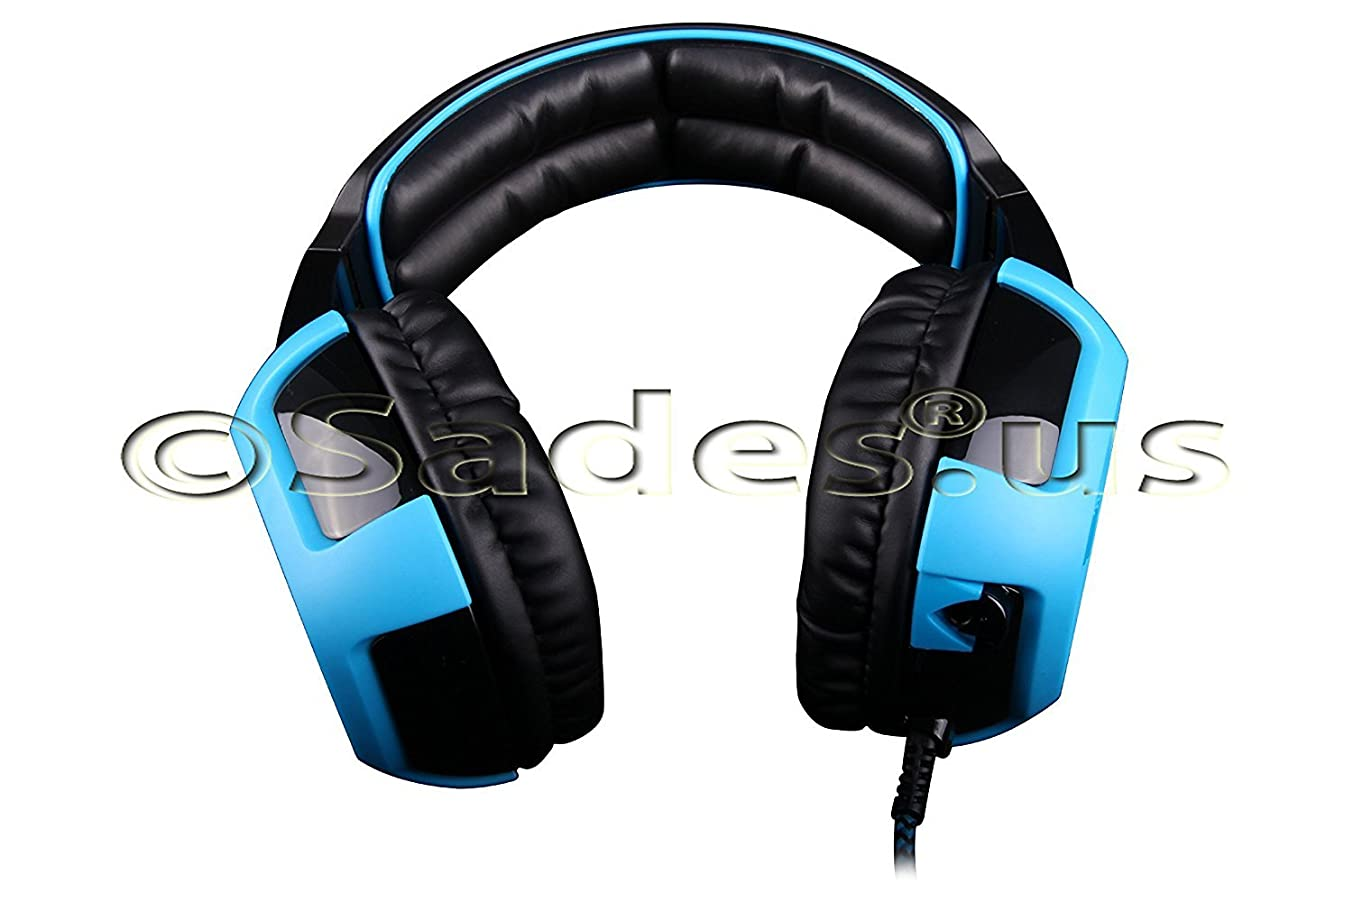 Sades Shaker Wired 7.1 Stereo Gaming Headset with Removable Noise Cancelling Mic